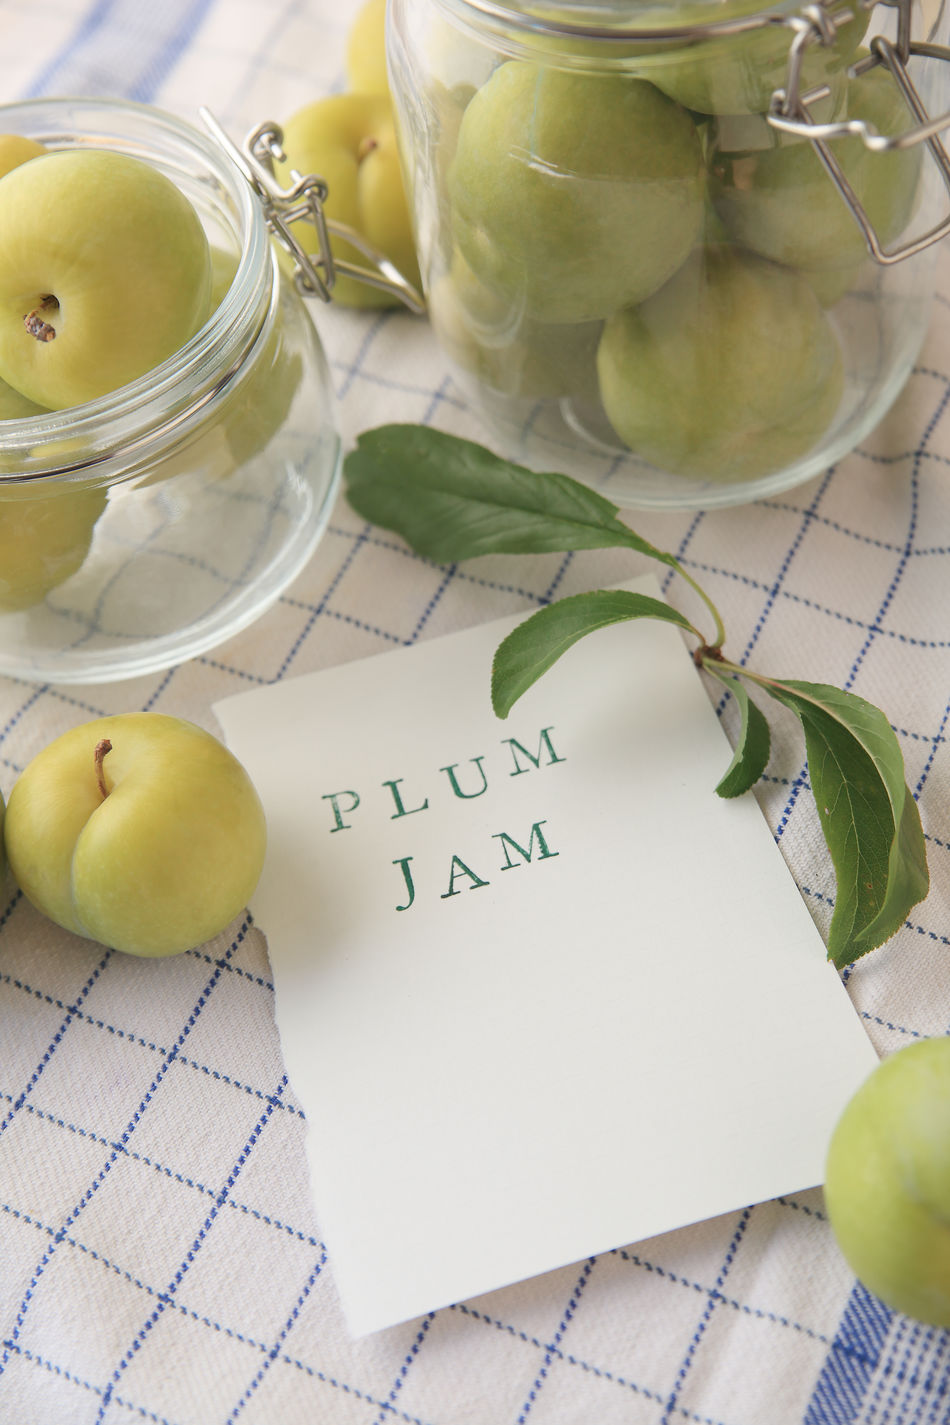 Fresh plums for jam-making in glass jars Closeup Communication Copy Space Dish Towel Foliage Food Preparation Glass Jars Green Color Indoors  Indoors  Leaves Letters Making Jam No People Overhead Paper Pattern Plums Sweet Textures Type Typography Words